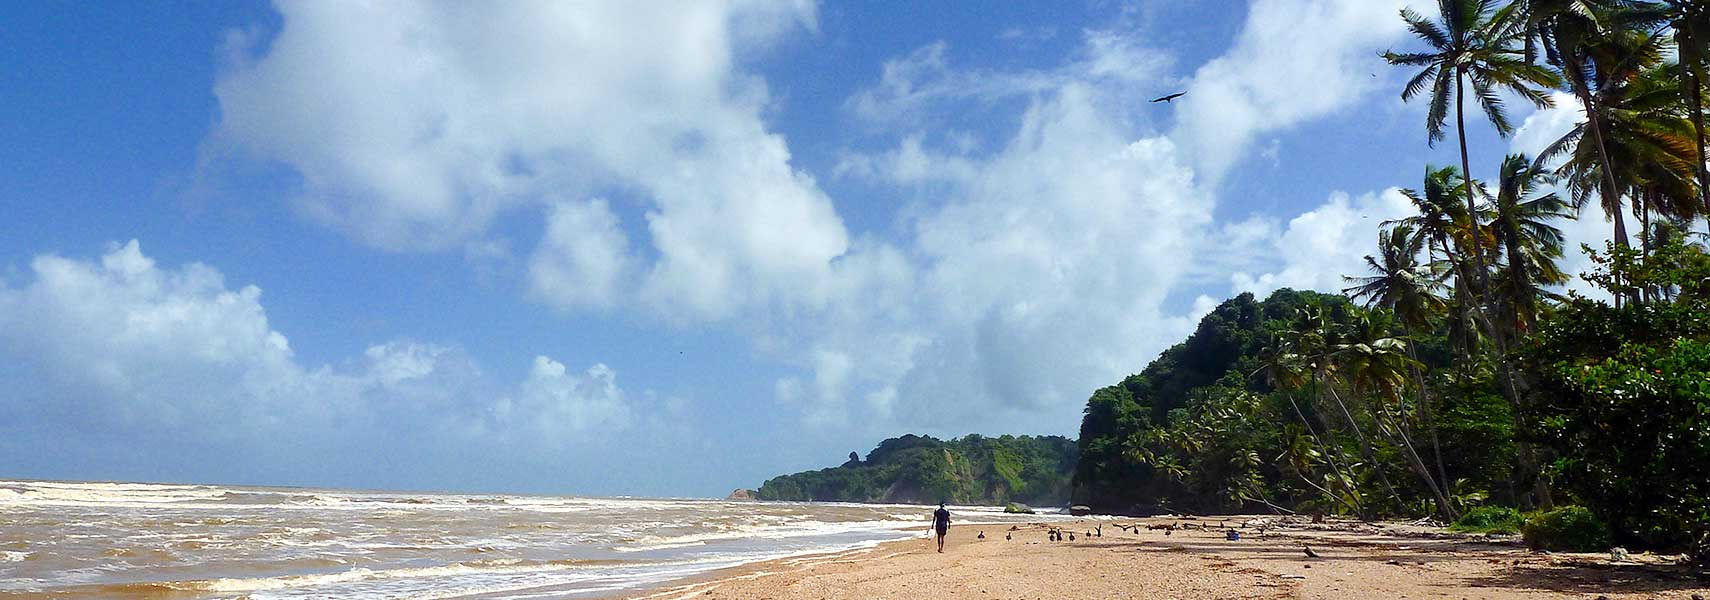 Trinidad's east coast at the Atlantic Ocean